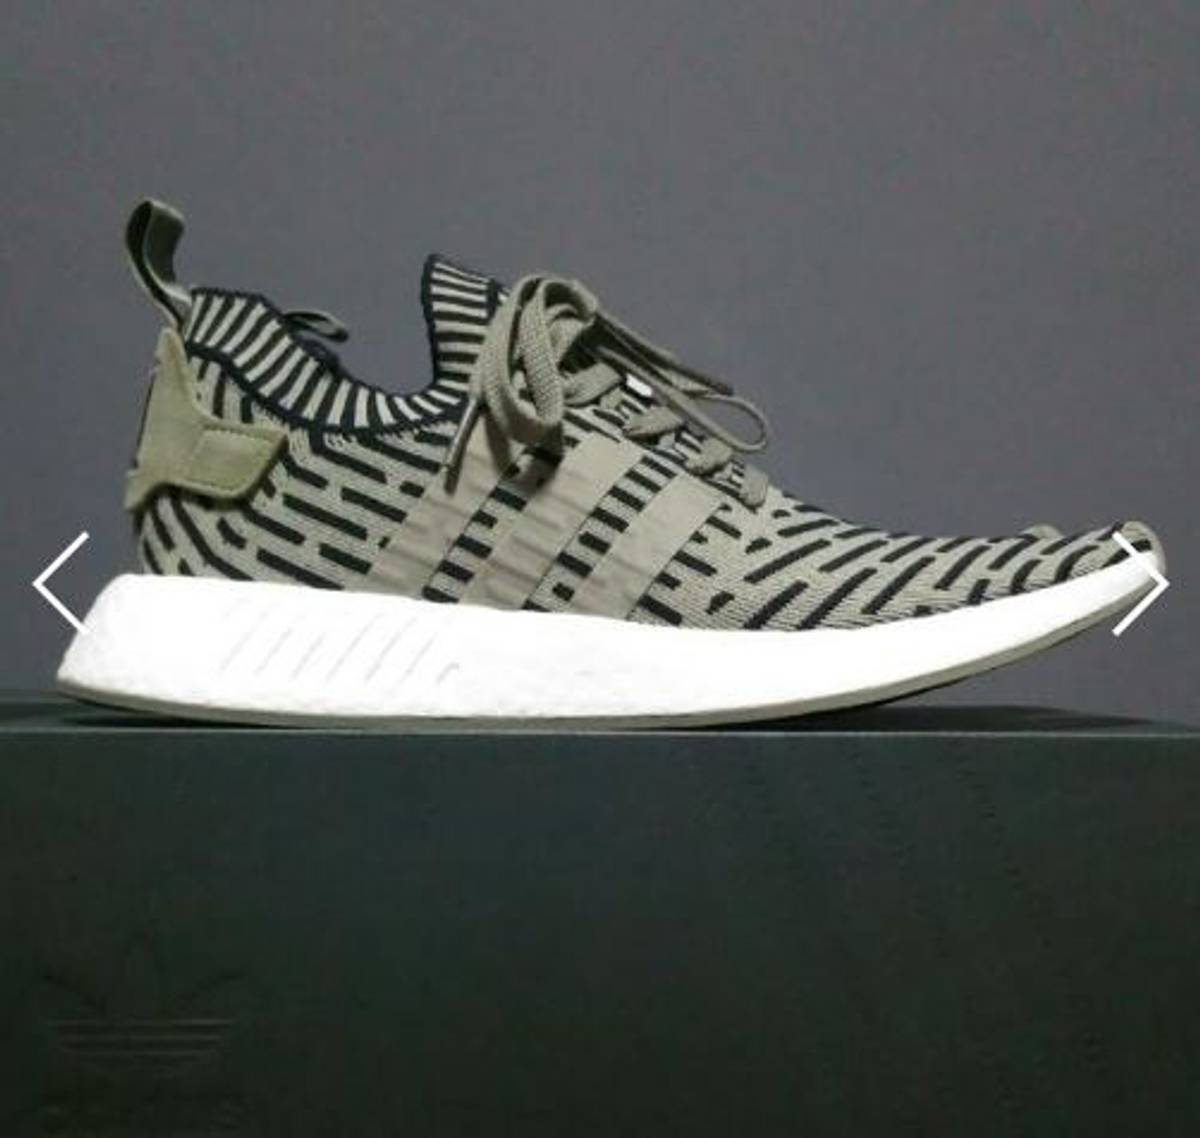 Adidas NMD R2 BLACK RED vs. NMD R1 RED BLACK / BREDZZZ